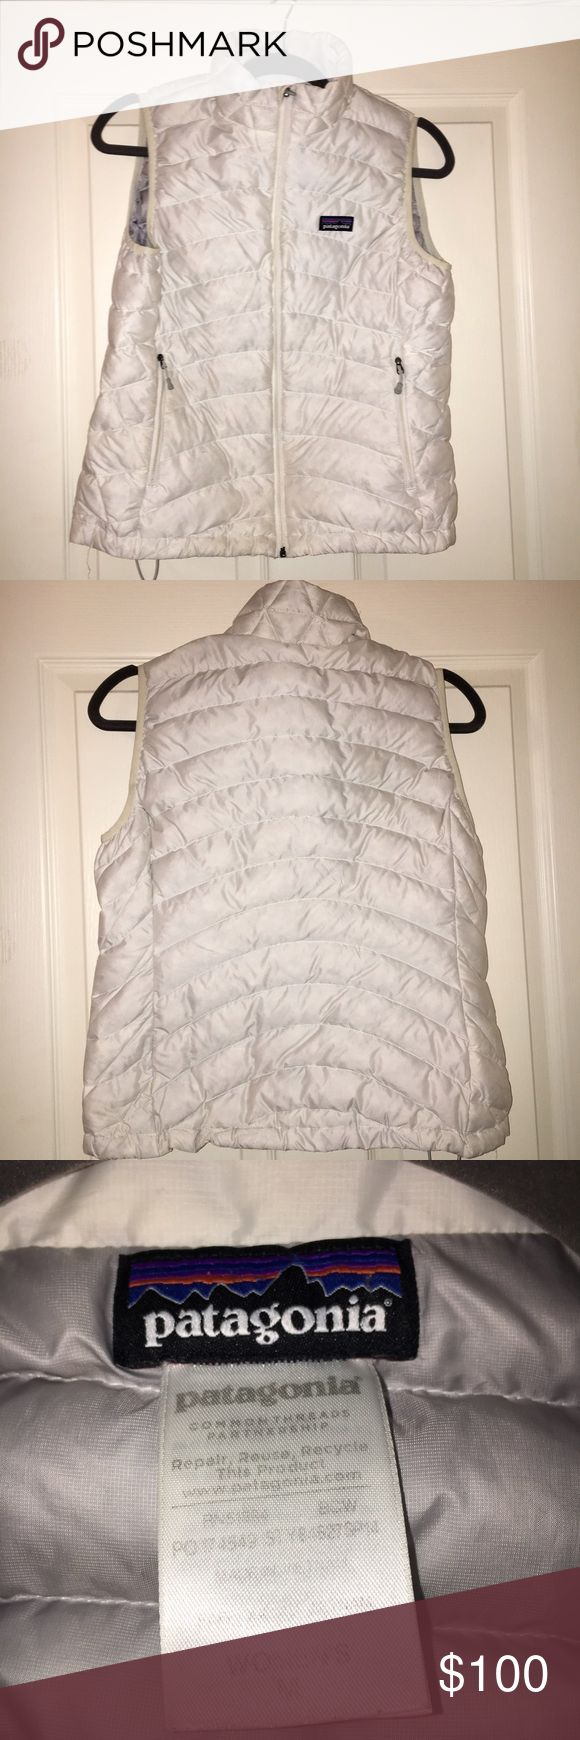 Patagonia Down Sweater Vest White Down vest from Patagonia. Stylish and a great layering price. Great condition. Patagonia Jackets & Coats Vests